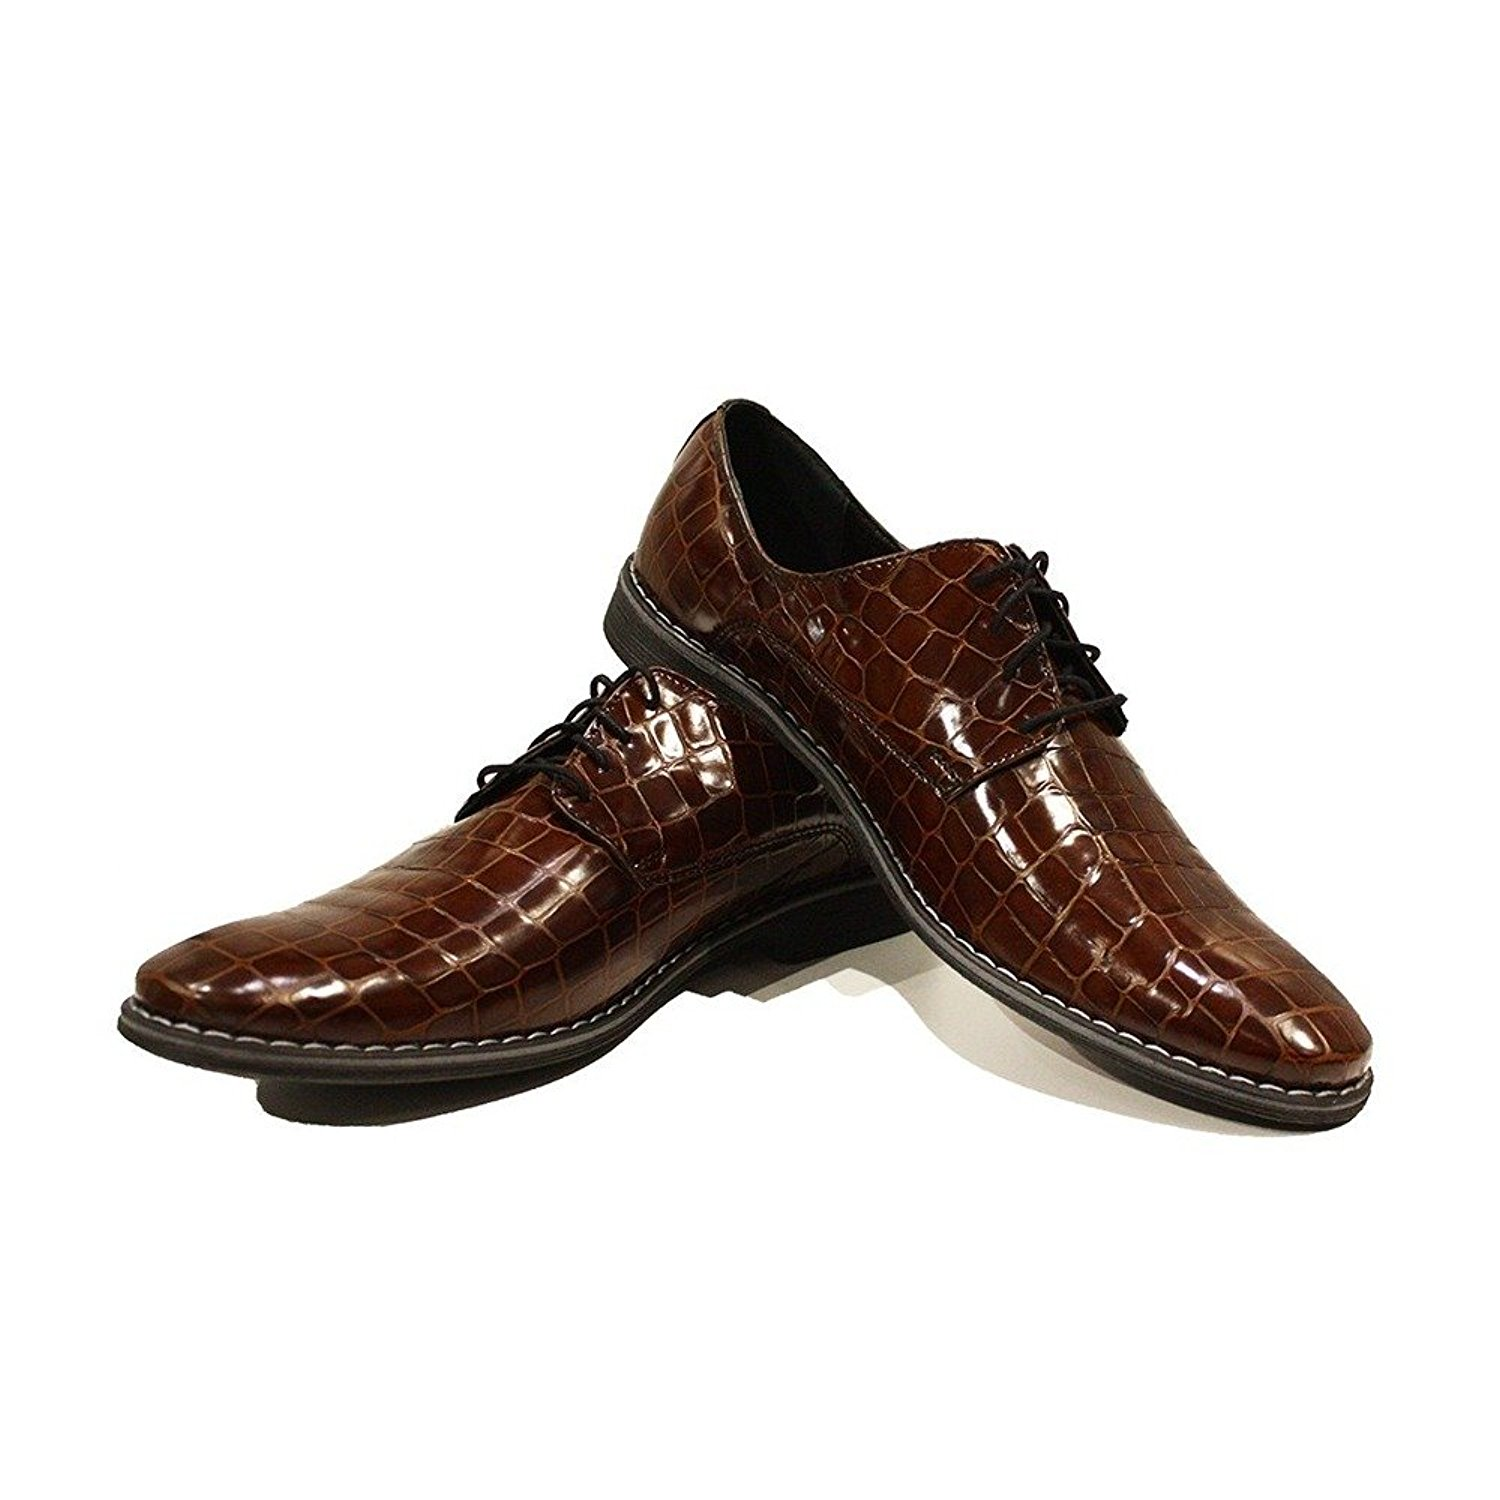 Modello Gozo - Handmade Italian Mens Brown Oxfords Dress Shoes - Cowhide Embossed Leather - Lace-up